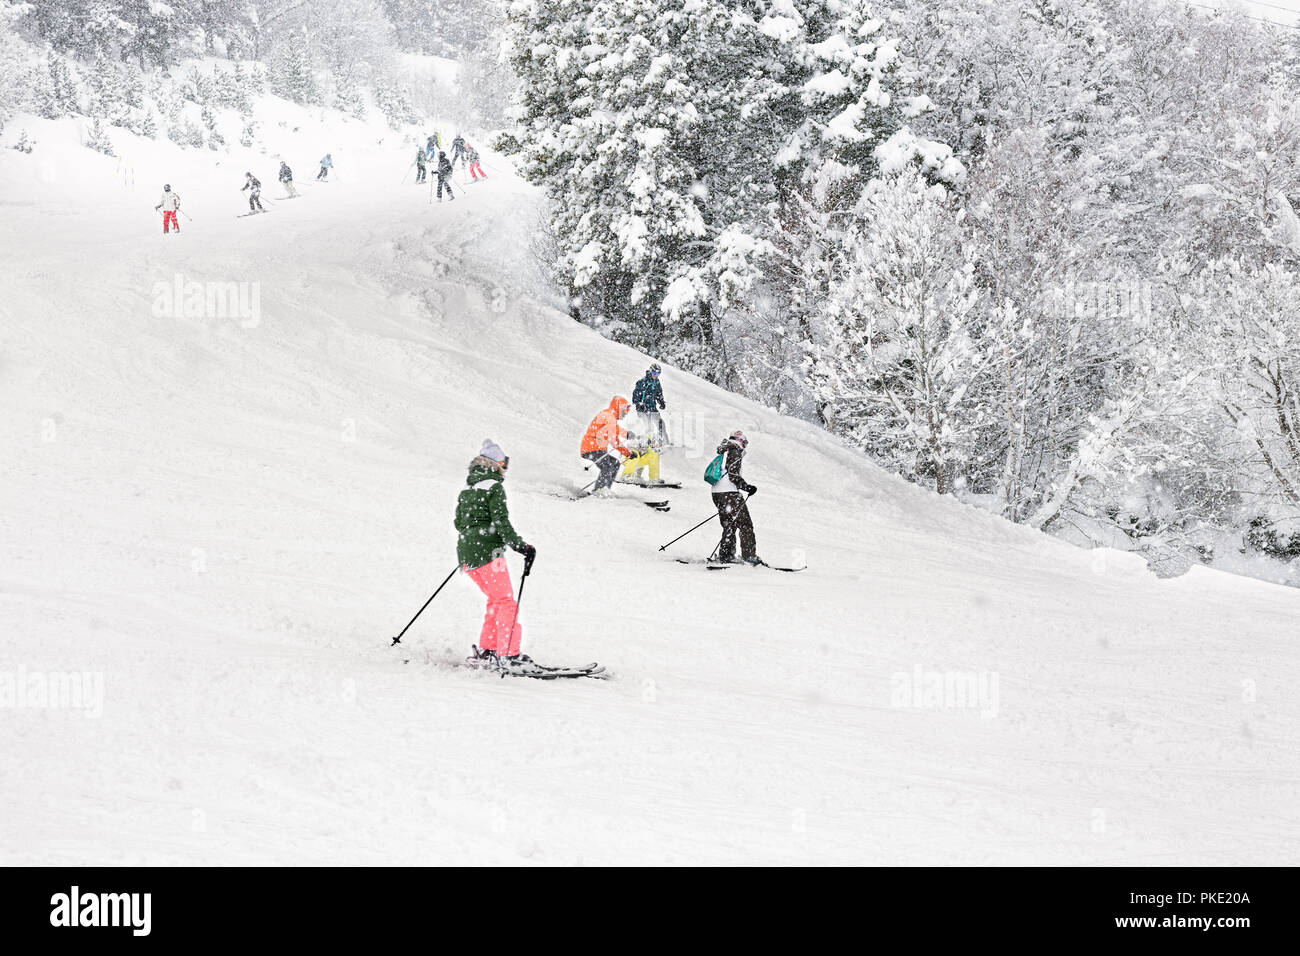 Downhill skiing during a heavy snowfall. Group of tourists, adults and children, on a resort slope in Andorra. - Stock Image